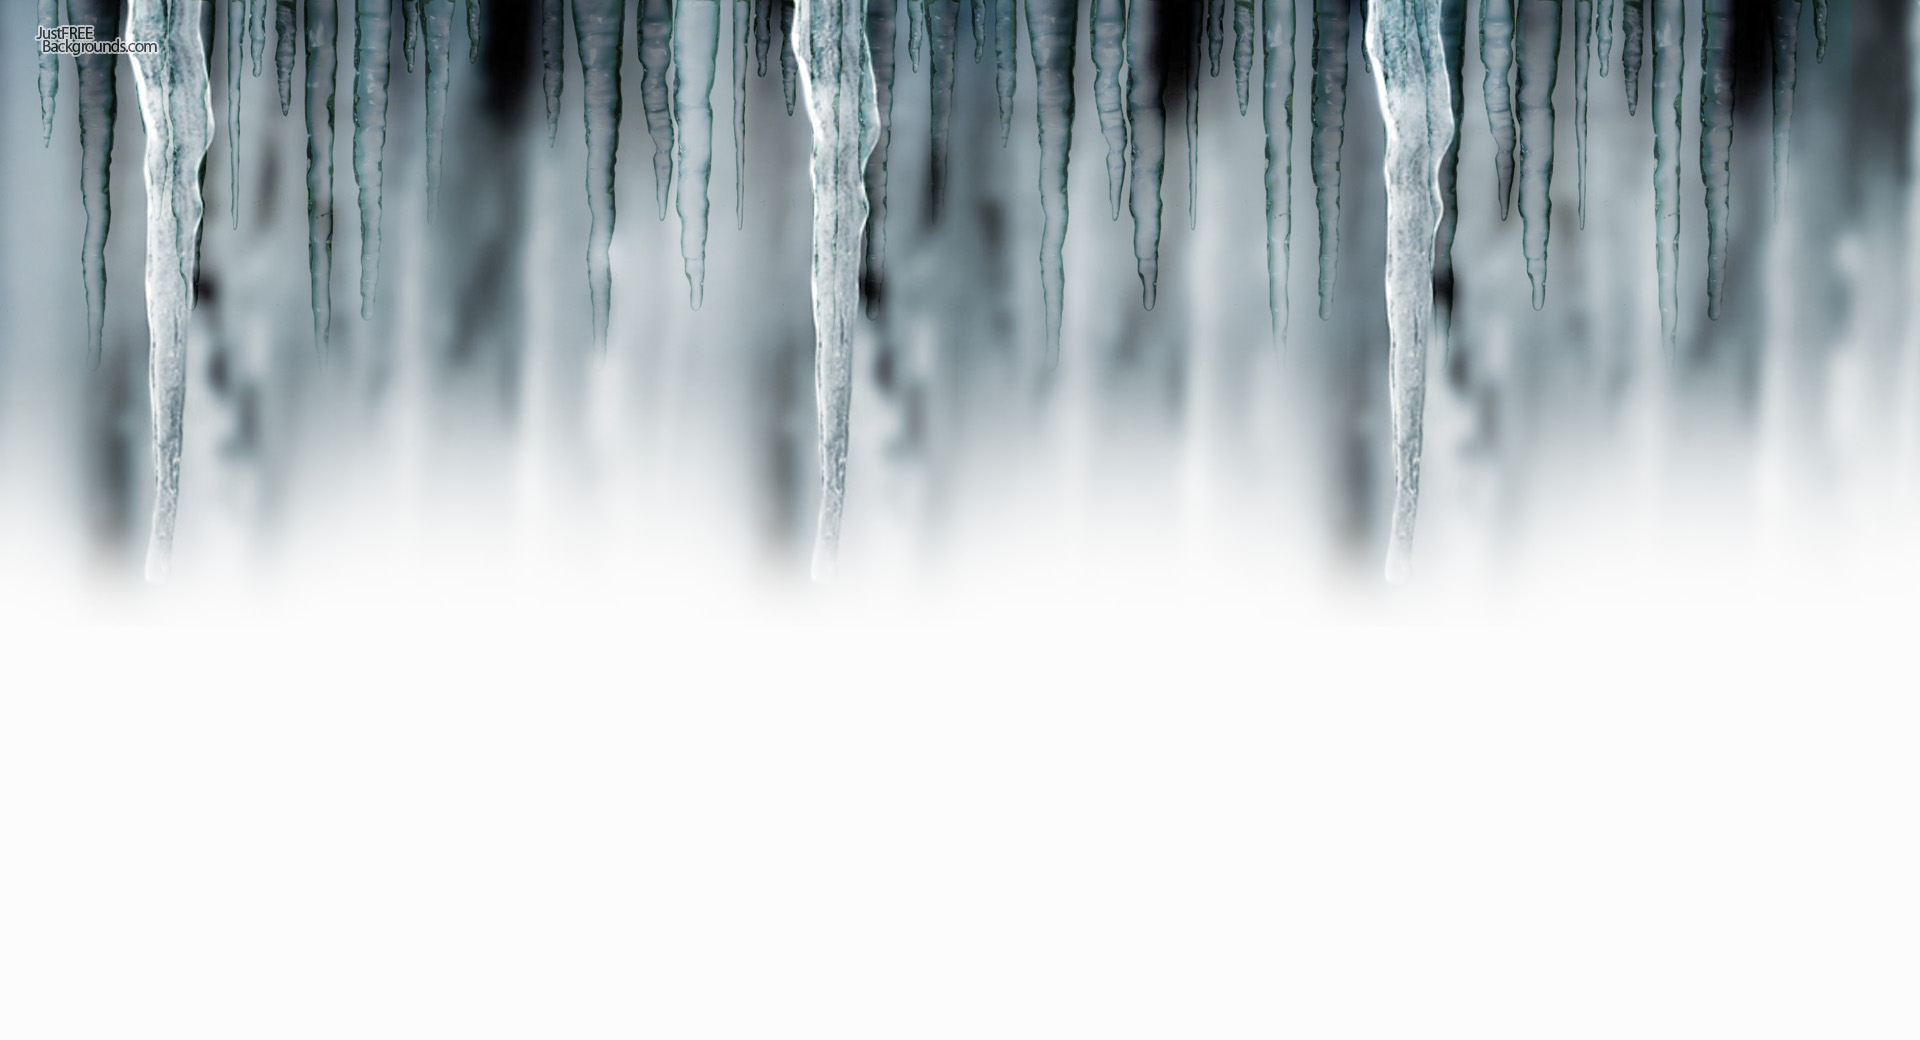 Icicle Png Artistic Icicle Free 233375Icicles Border Png - Icicle, Transparent background PNG HD thumbnail